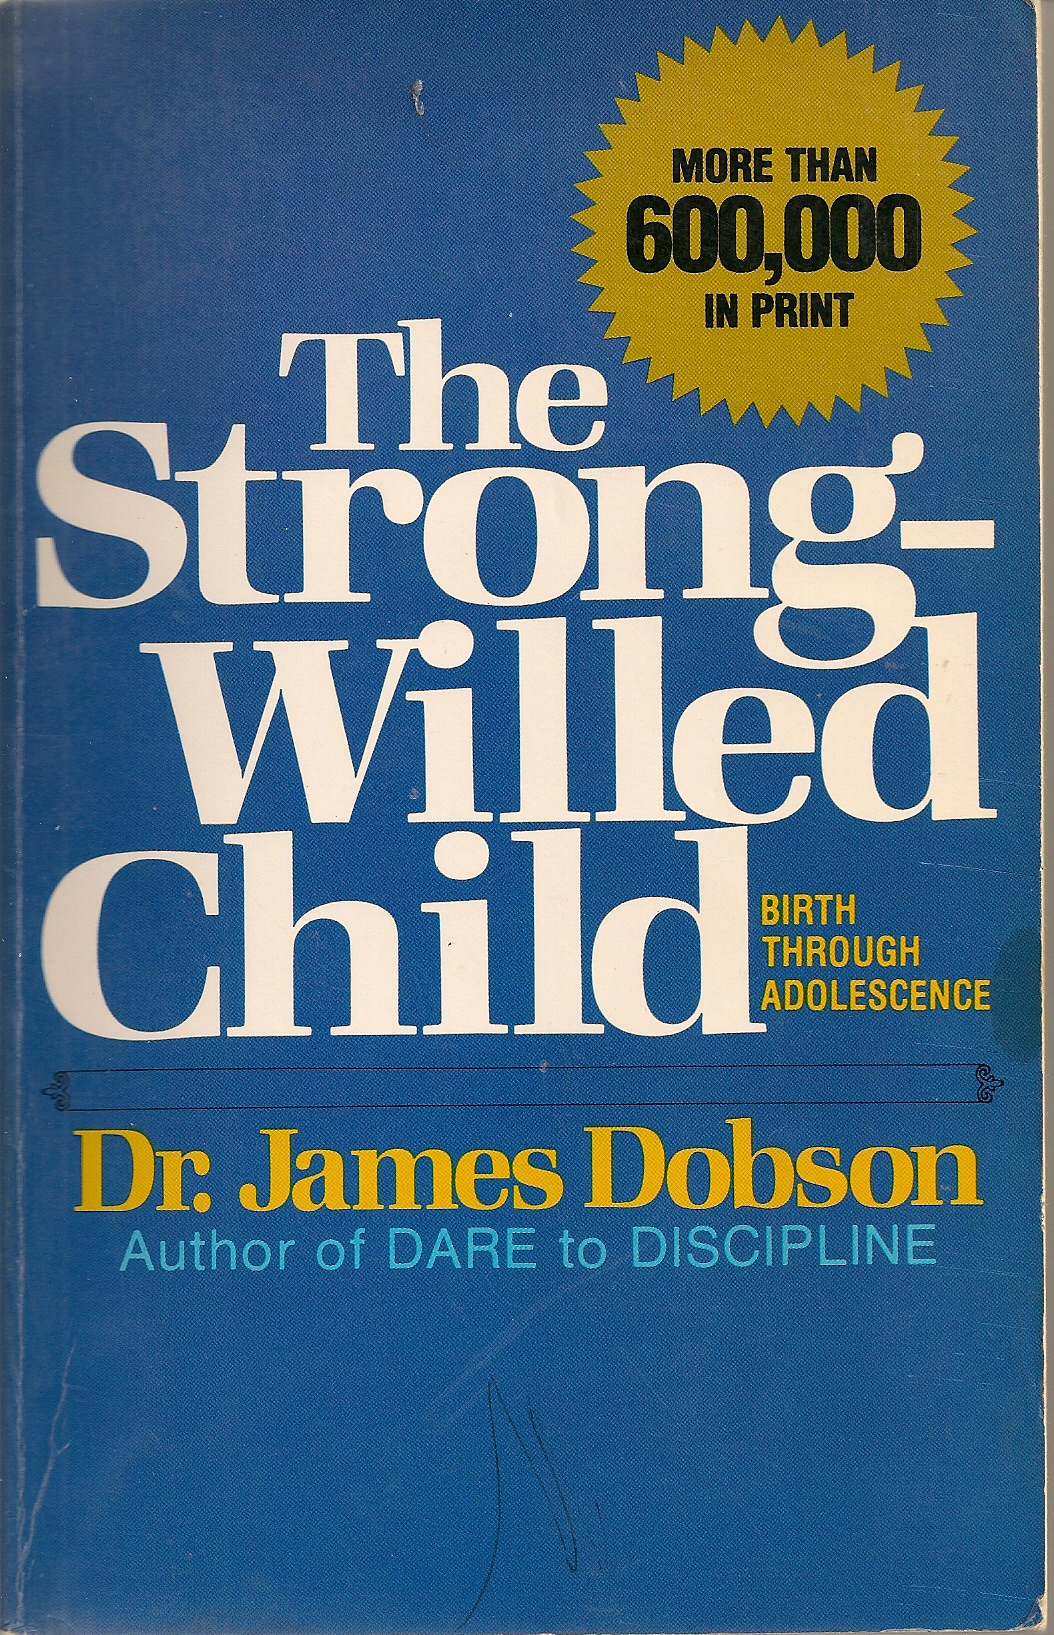 Night lights james dobson - The Cover Of James Dobson S Book The Strong Willed Child In Which